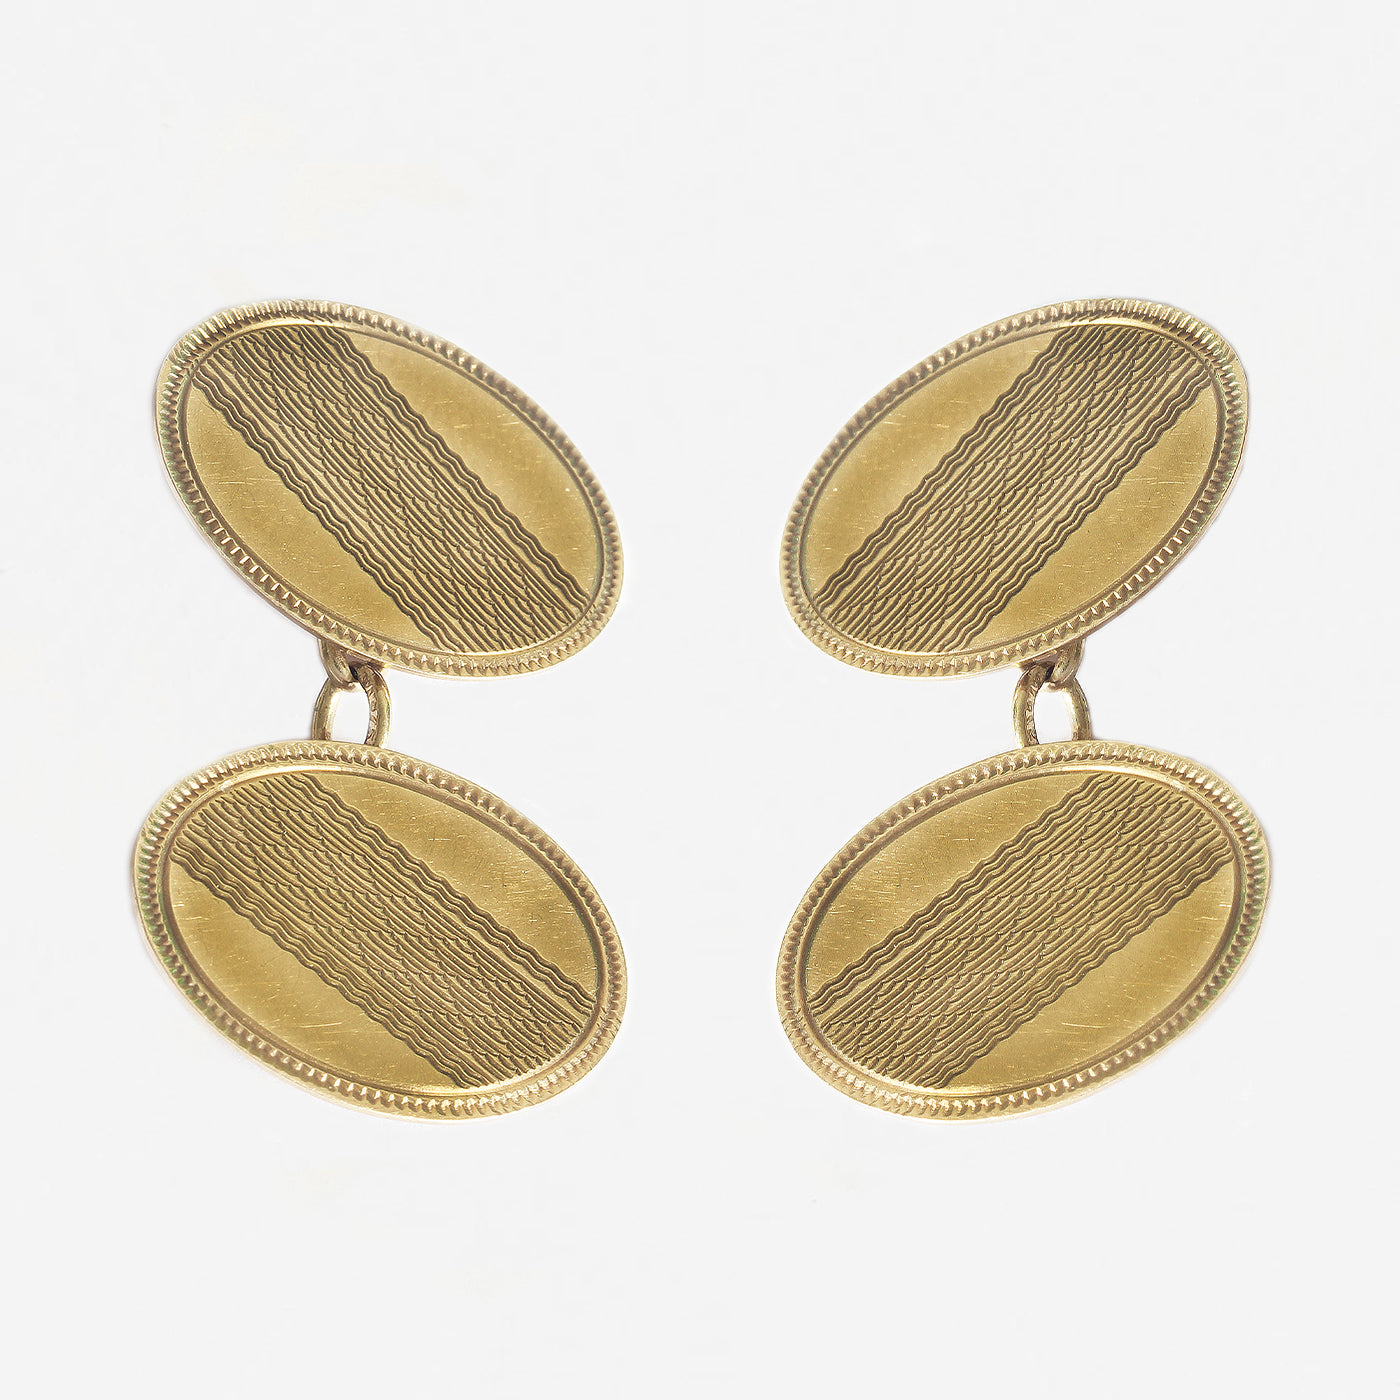 a secondhand pair of yellow gold engine turned engraved oval cufflinks with chain connectors